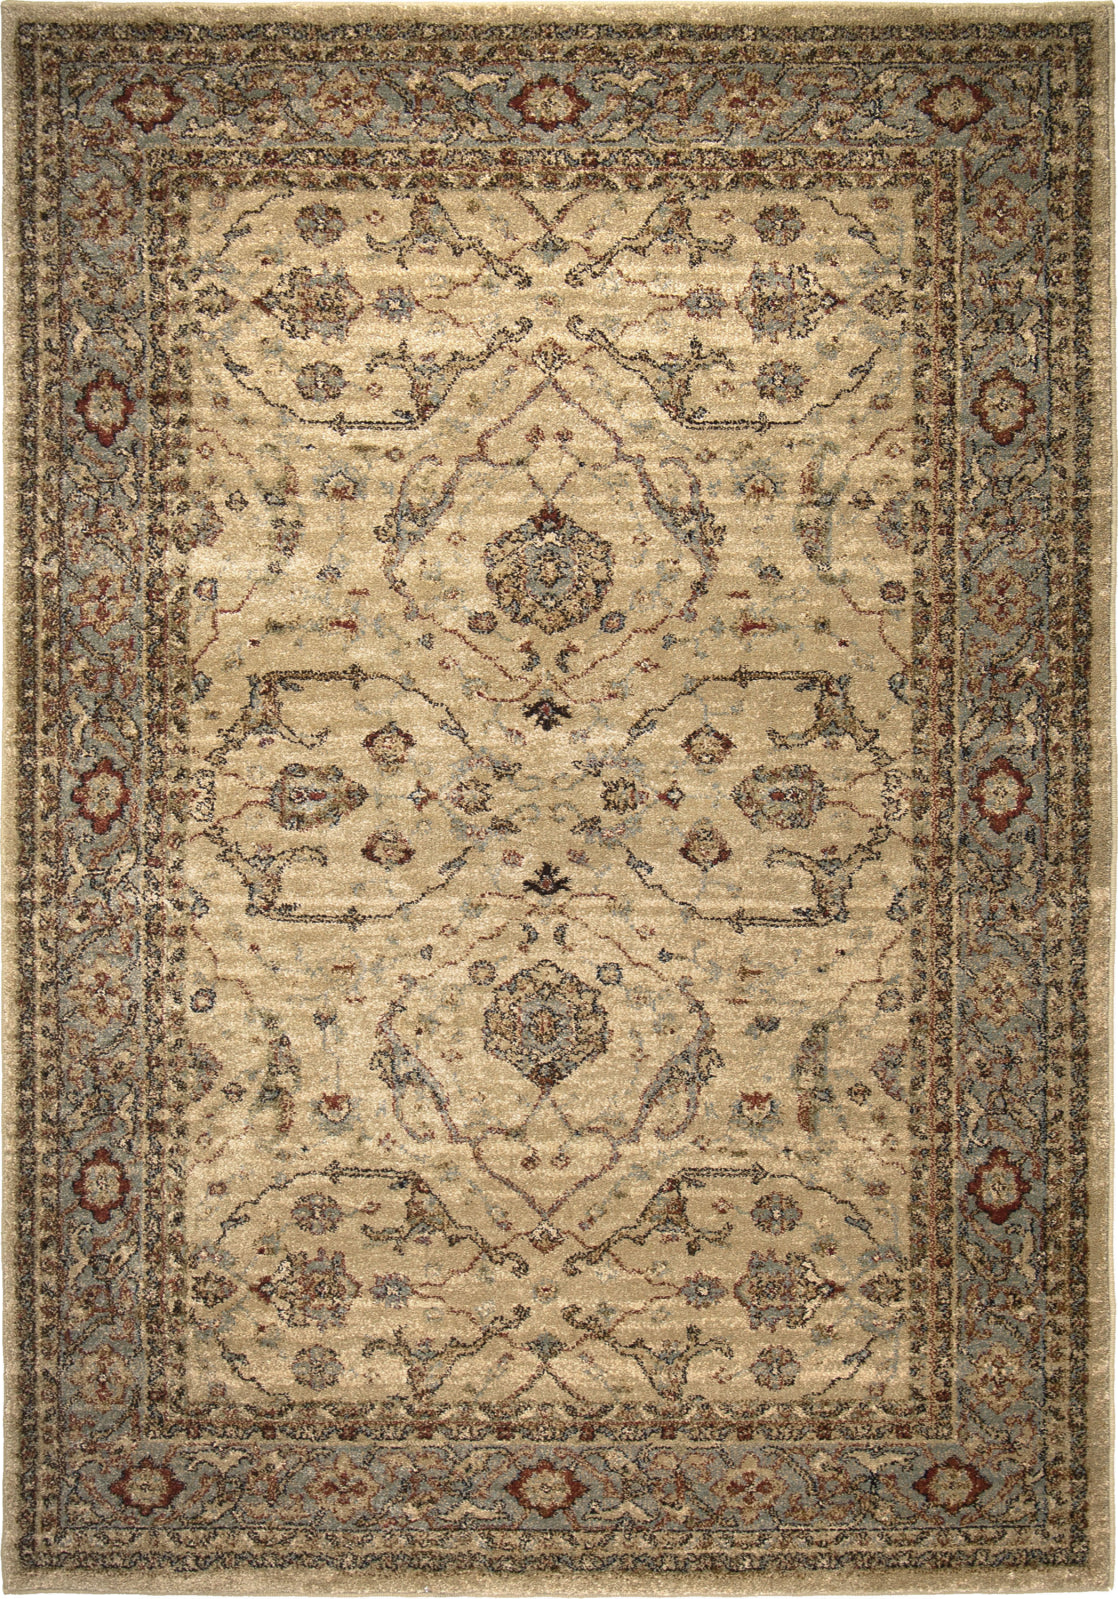 Orian Rugs Aria Ansley Mandalay Area Rug by Palmetto Living main image